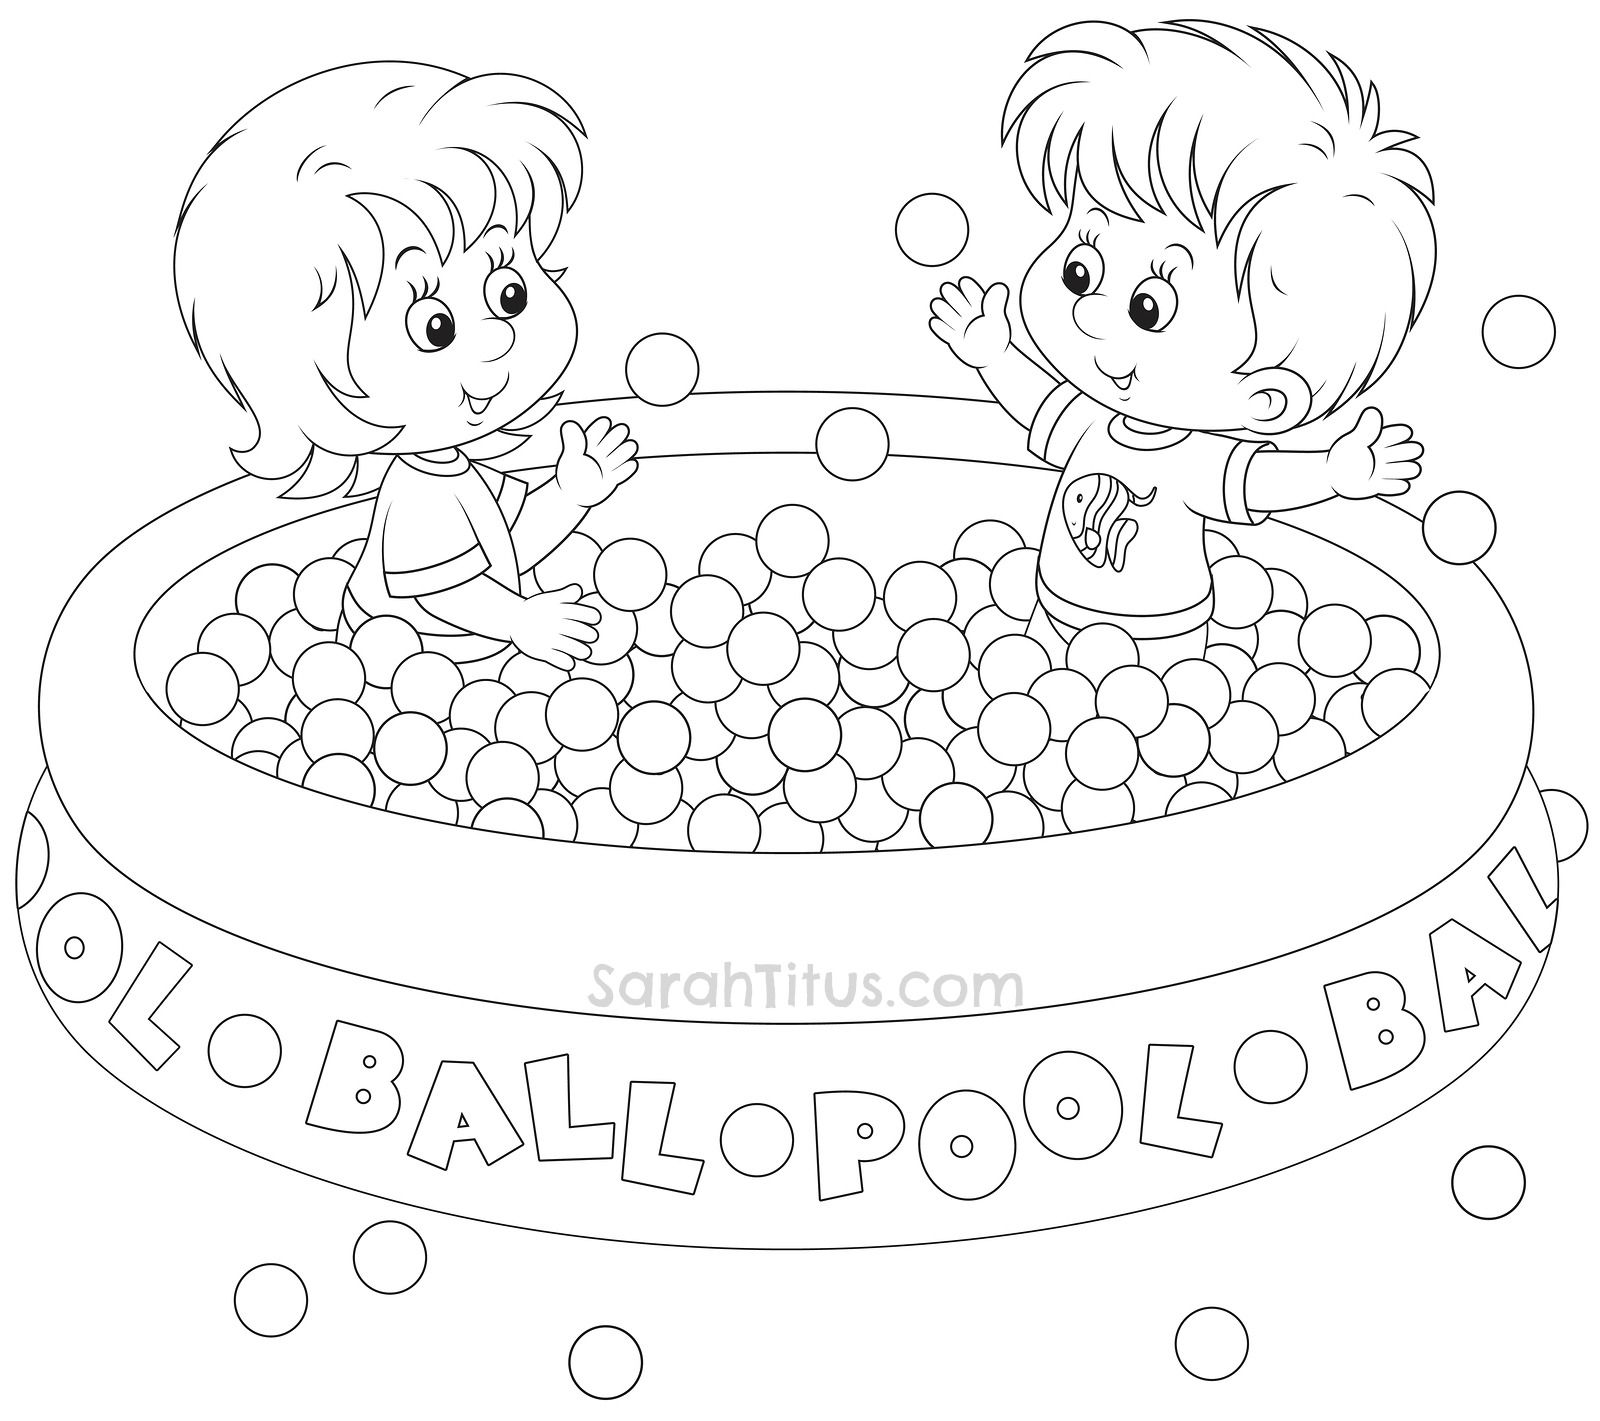 Free Summer Fun Coloring Pages for the Kids - Sarah Titus | ECM ...